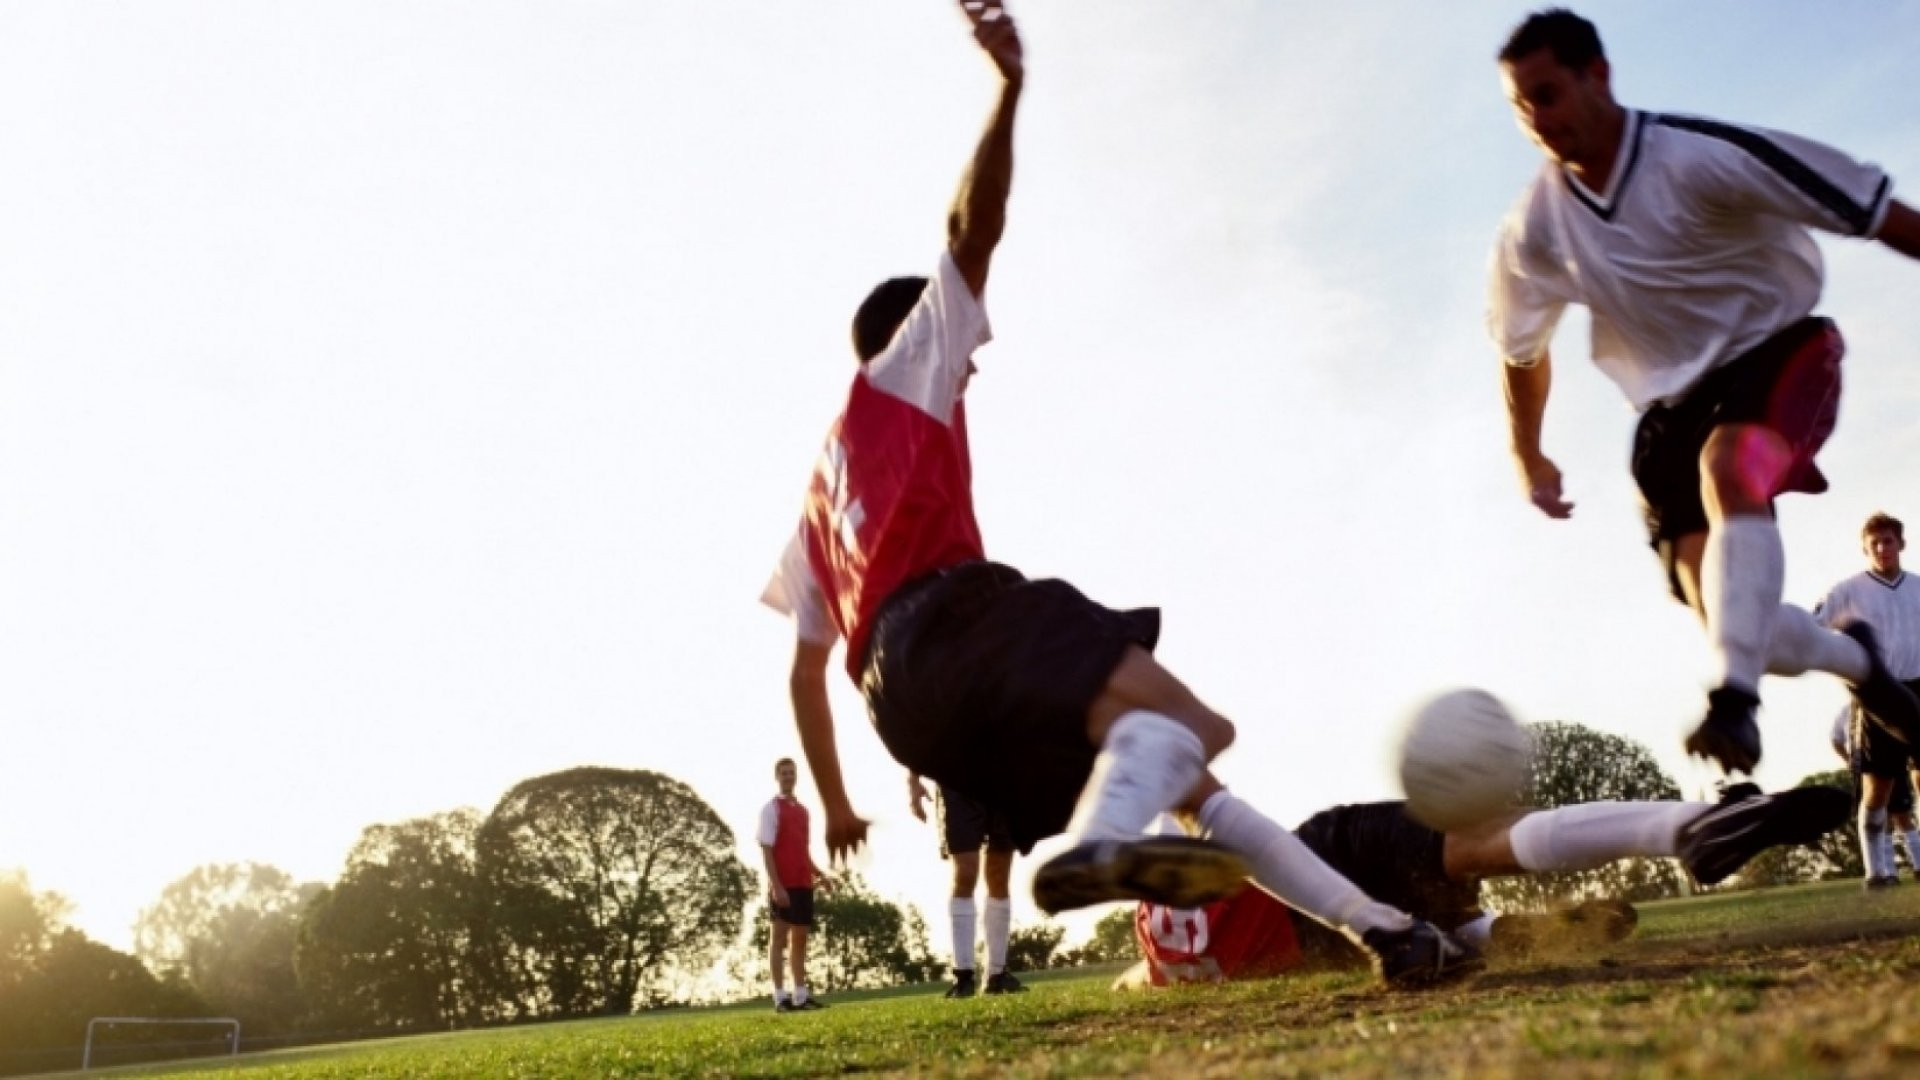 3 Reasons You Should Hire an Athlete Today